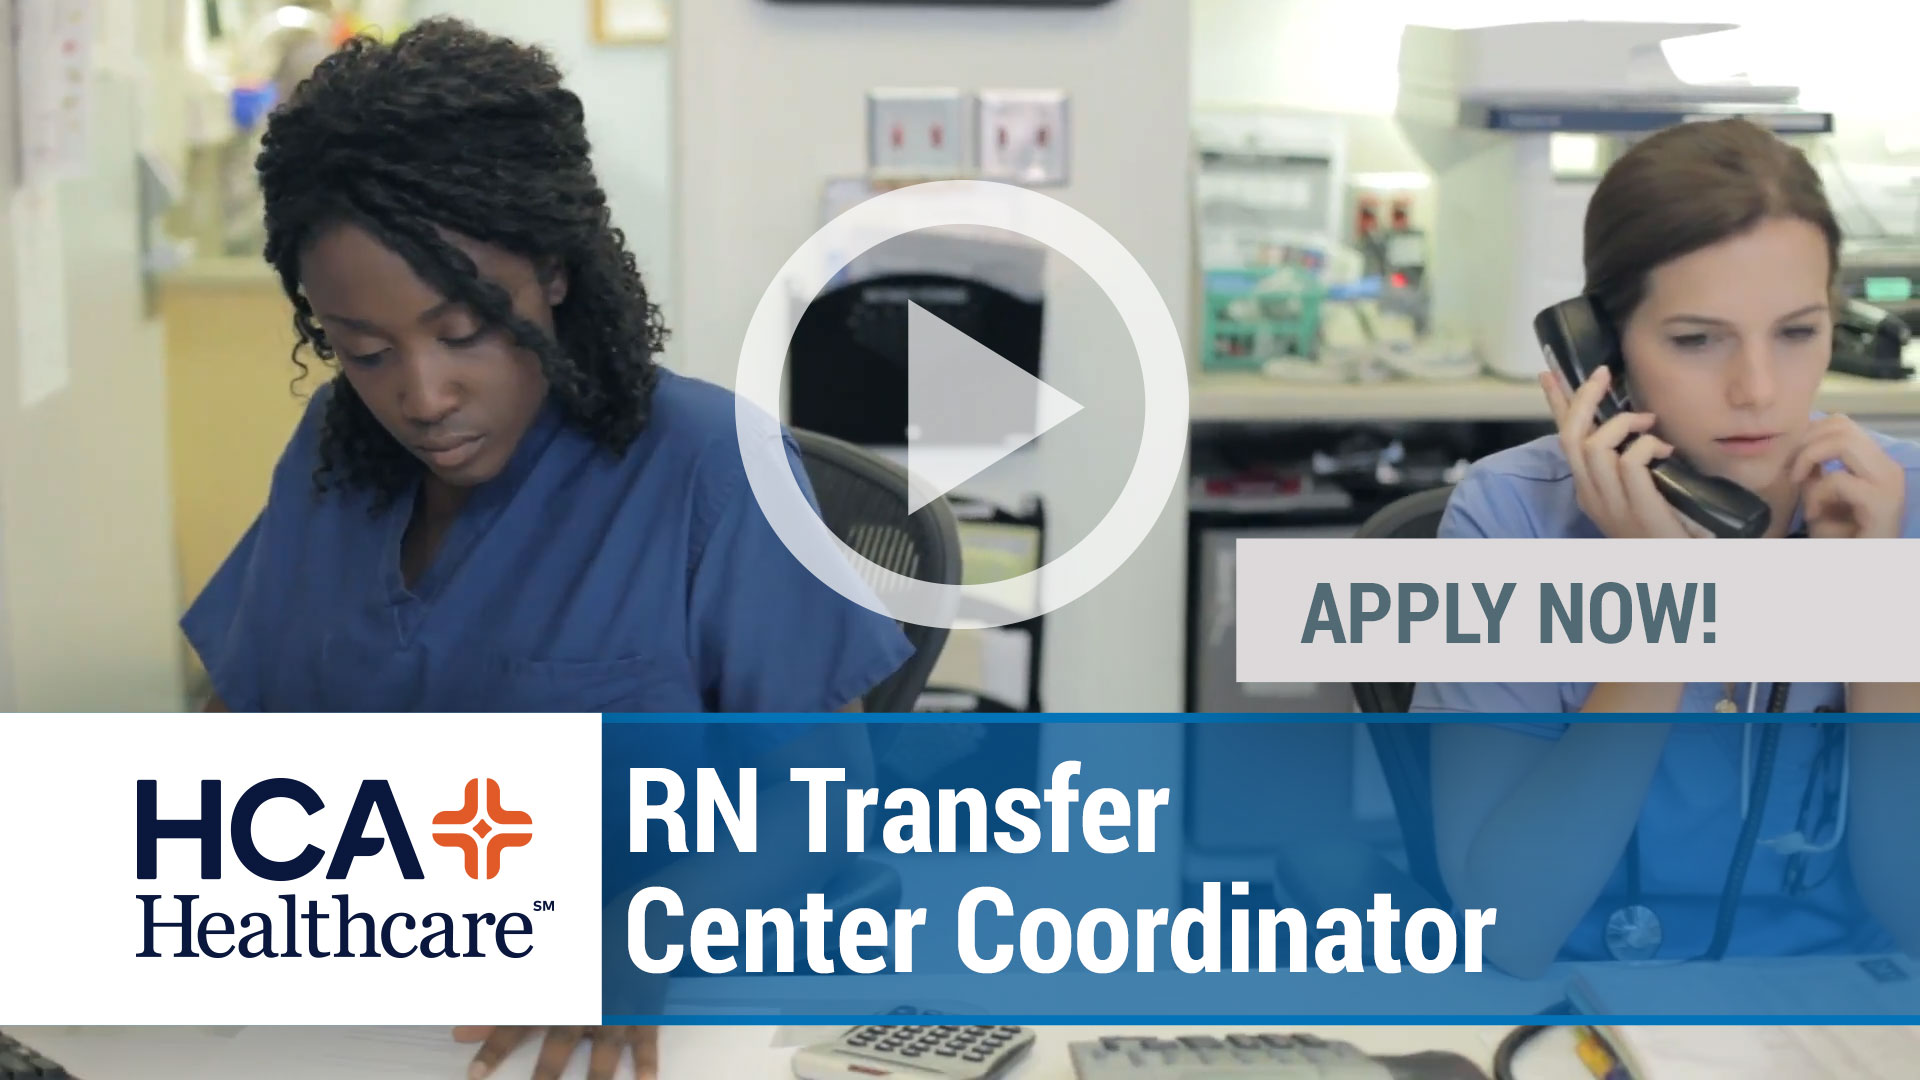 Watch our careers video for available job opening RN Transfer Center Coordinator in Multiple Locations